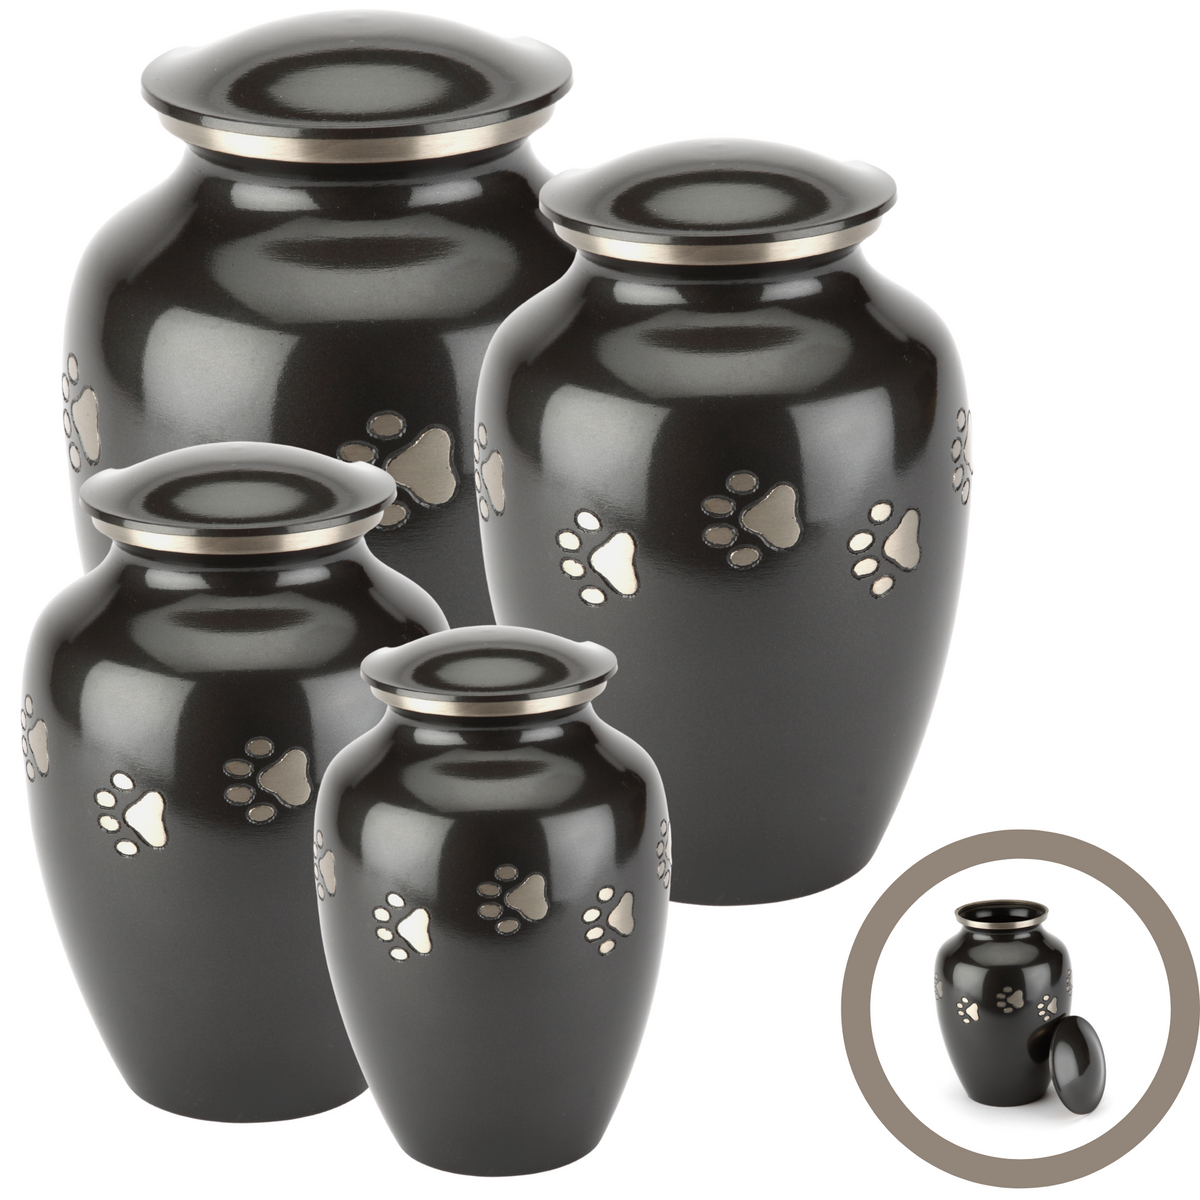 Jarrow Black Cremation Ashes Pet Urn Range - Urns UK